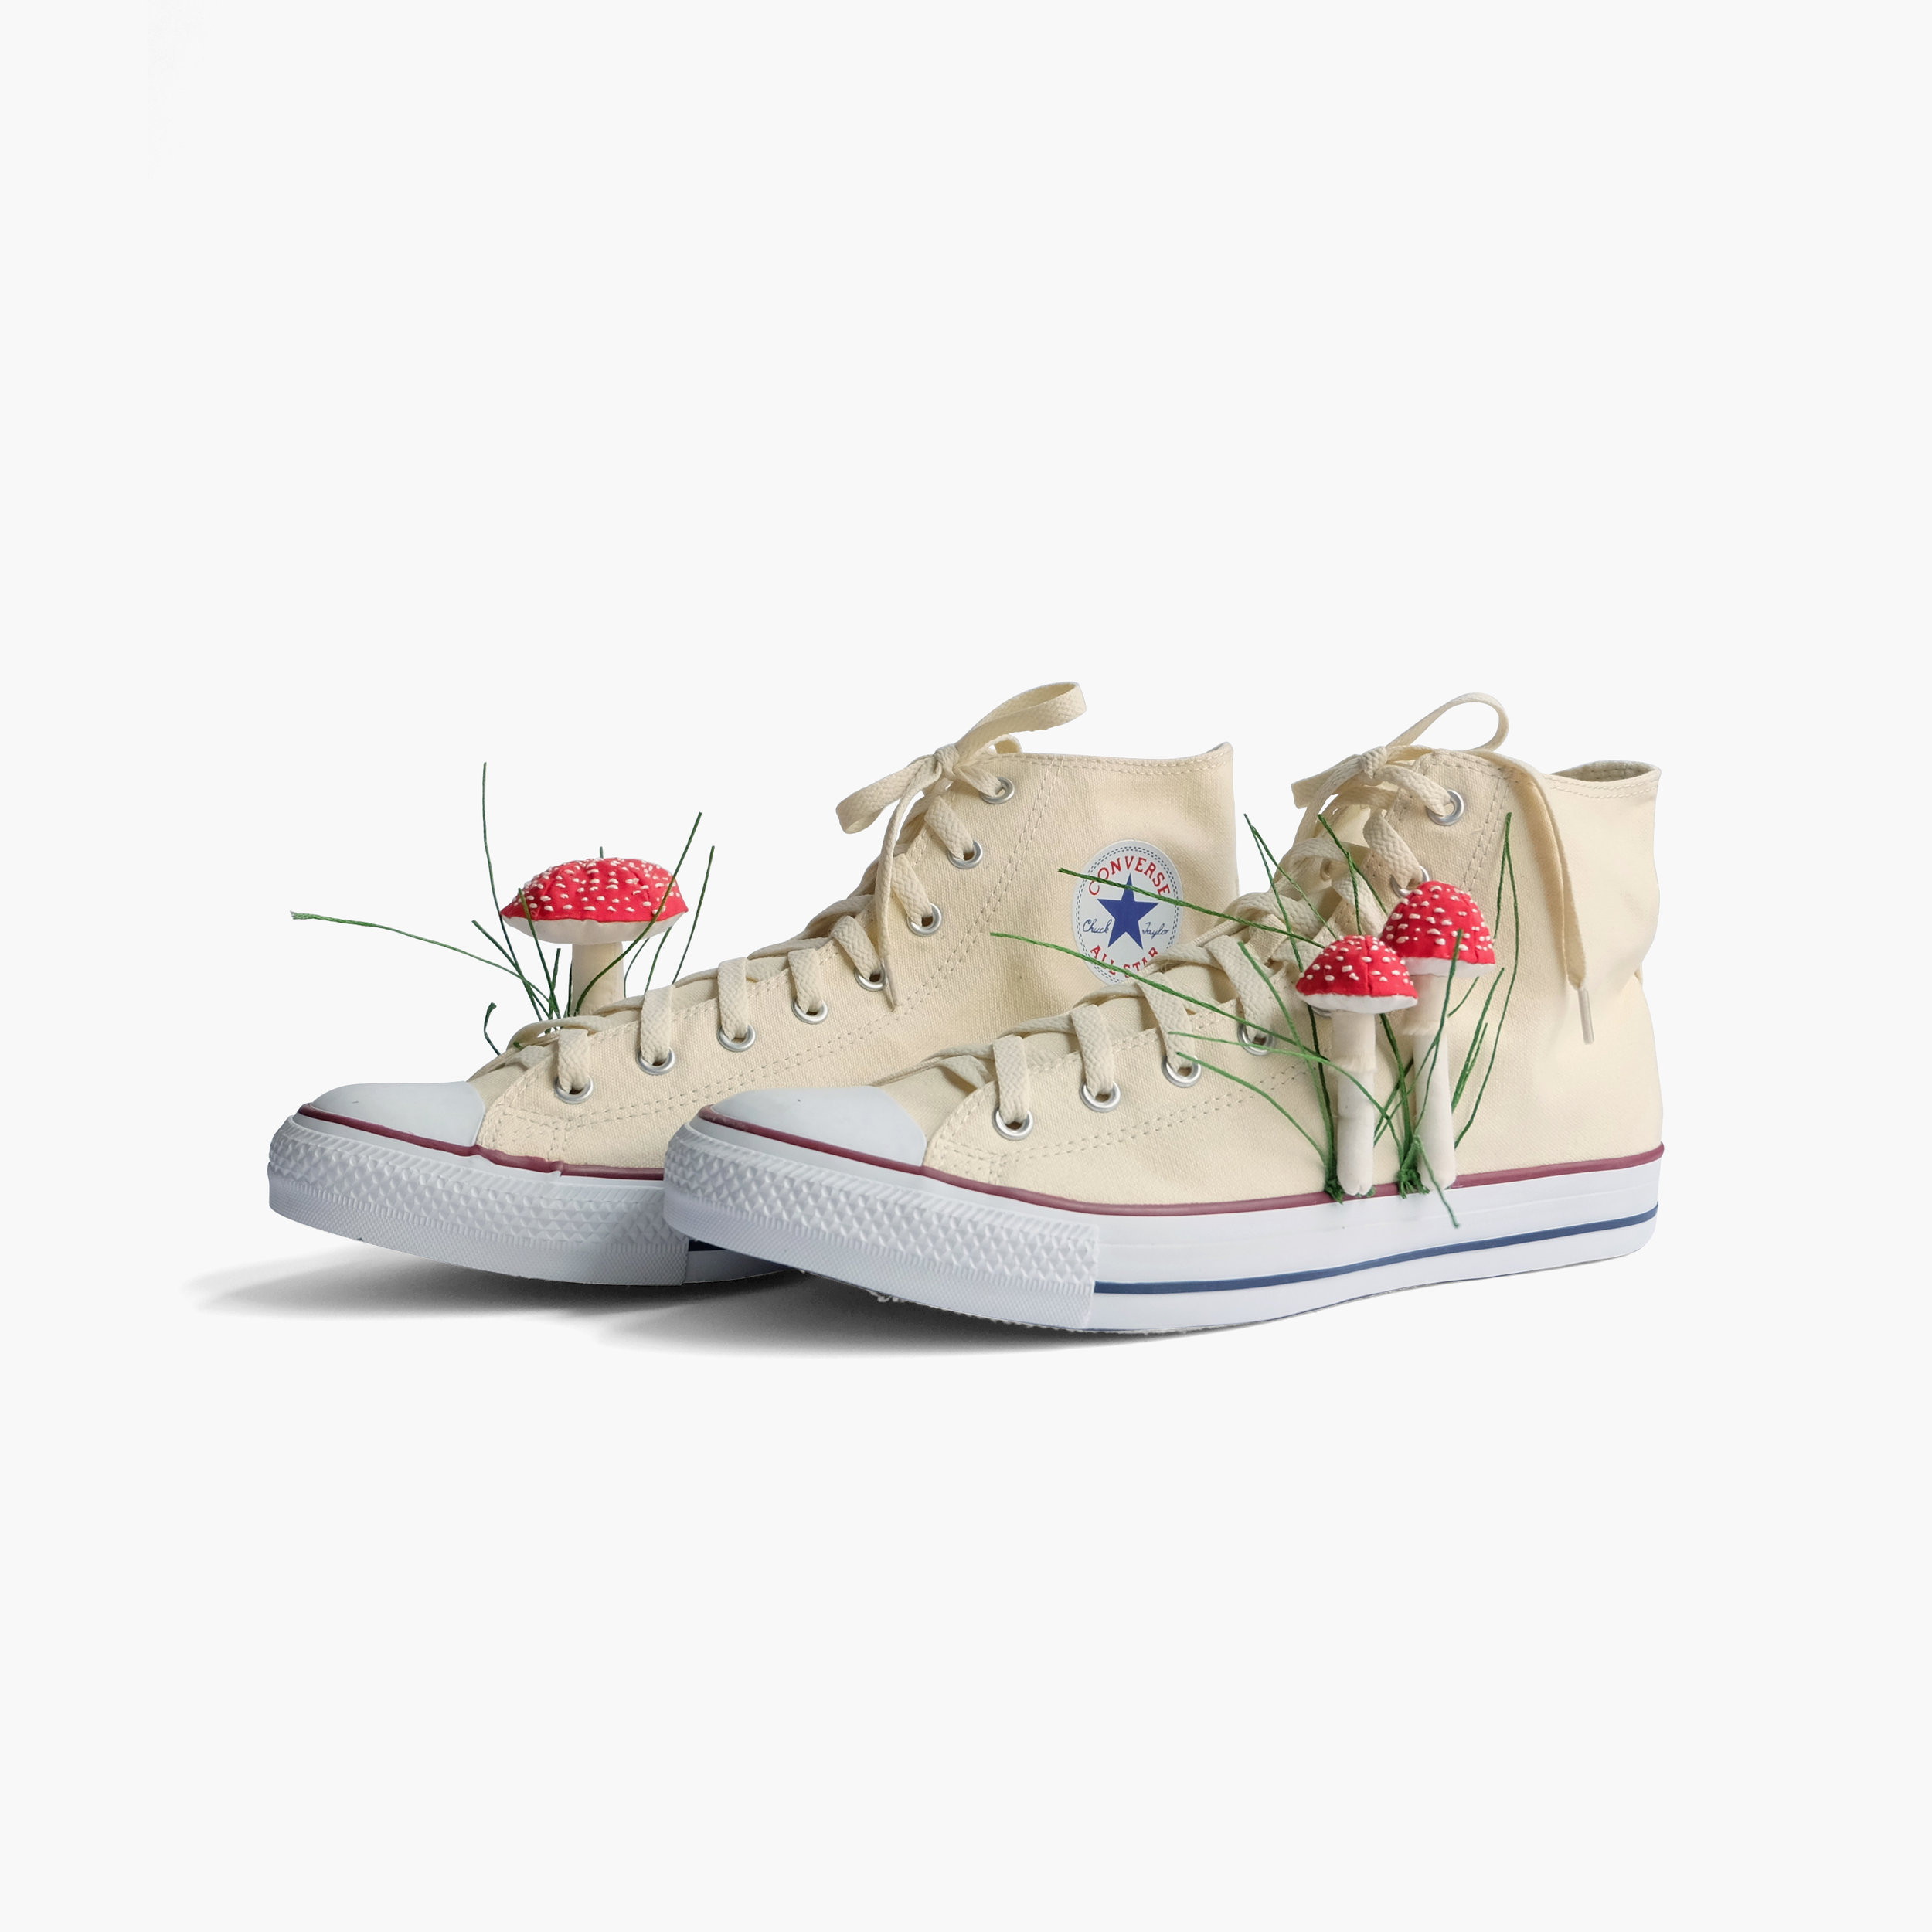 Portable Nature for Urban Dwellers  Converse hi-tops, fiberfill, cotton cloth, embroidery floss 12 x 8 x 6 in 2014